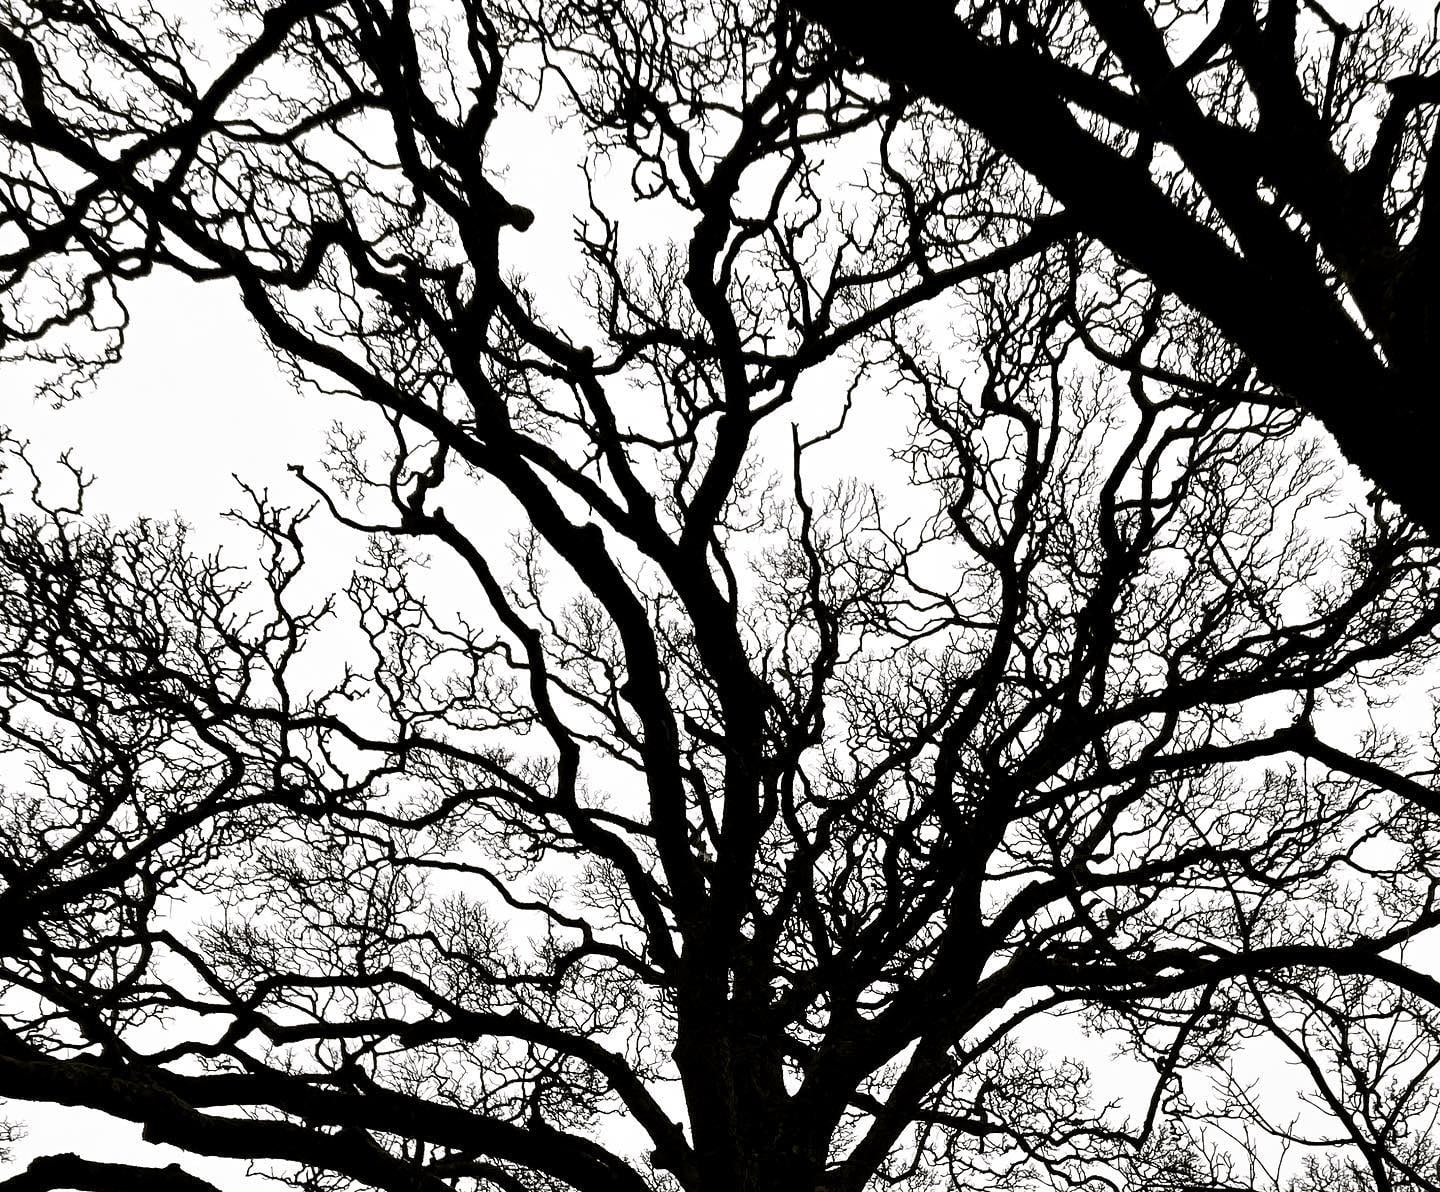 The Darnley Sycamore